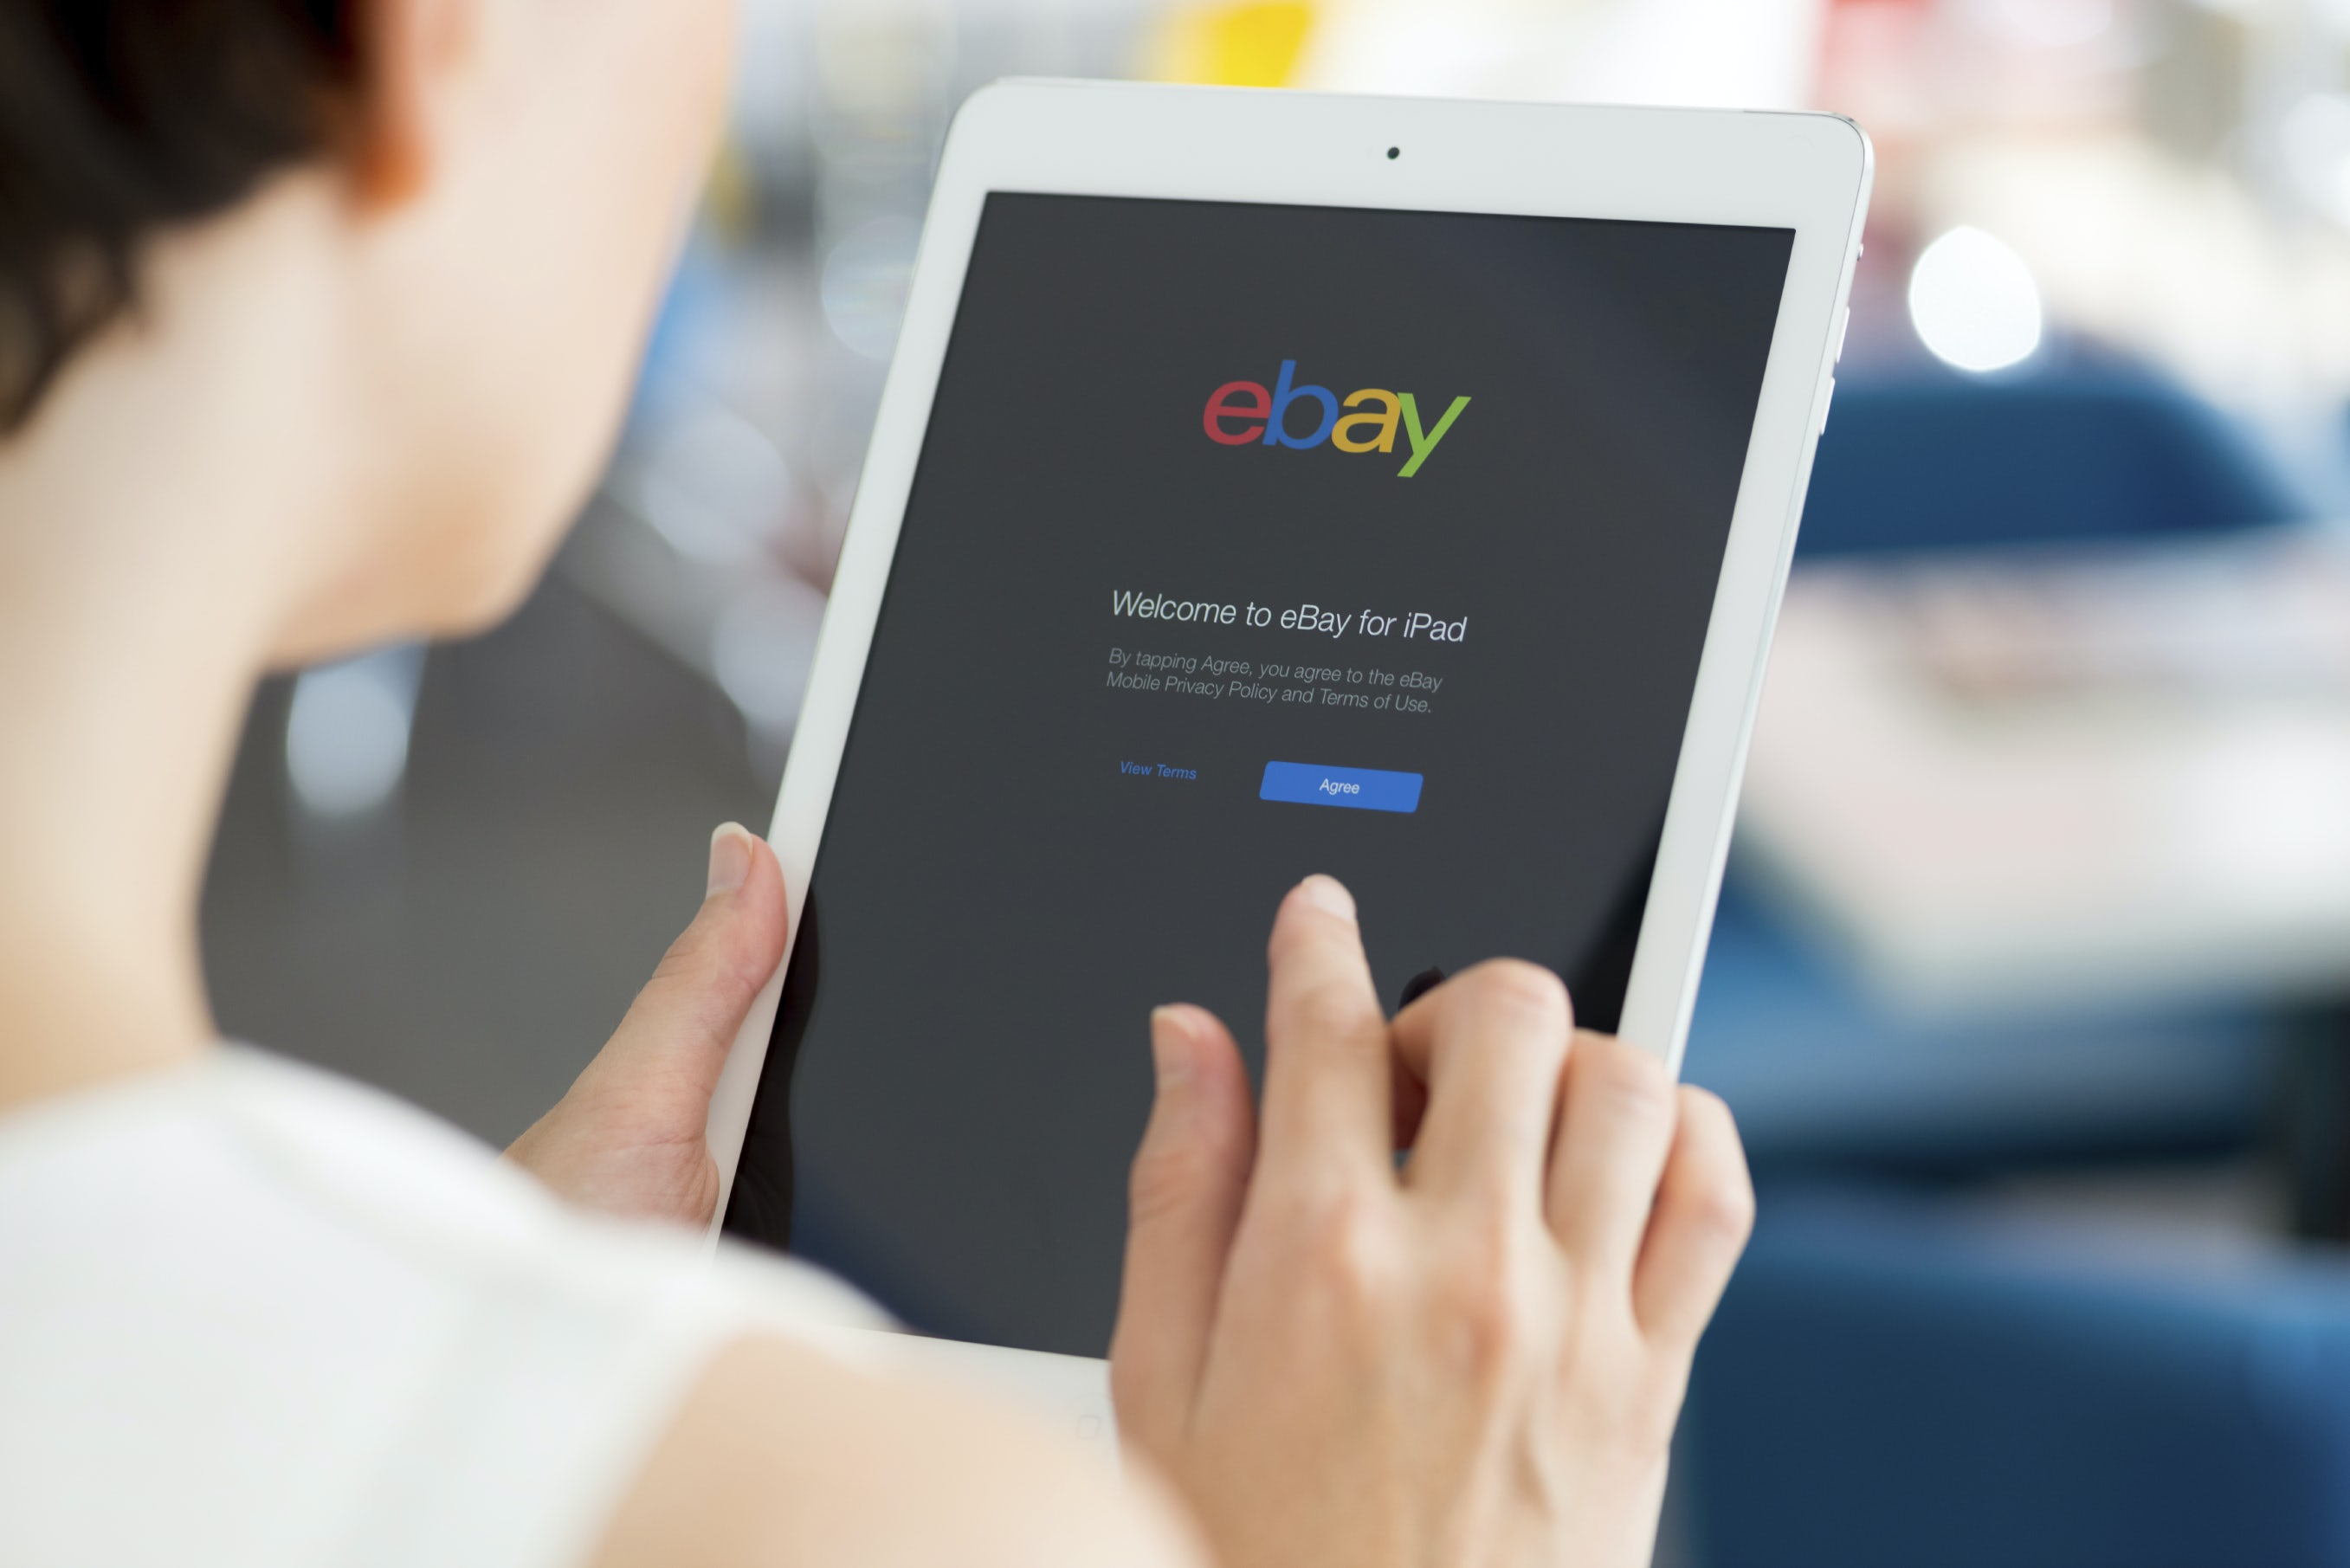 KIEV, UKRAINE - MAY 21, 2014: Woman holding a white Apple iPad Air with eBay welcome message on a screen. eBay is the worldwide online auction and shopping website that founded in September 3, 1995.